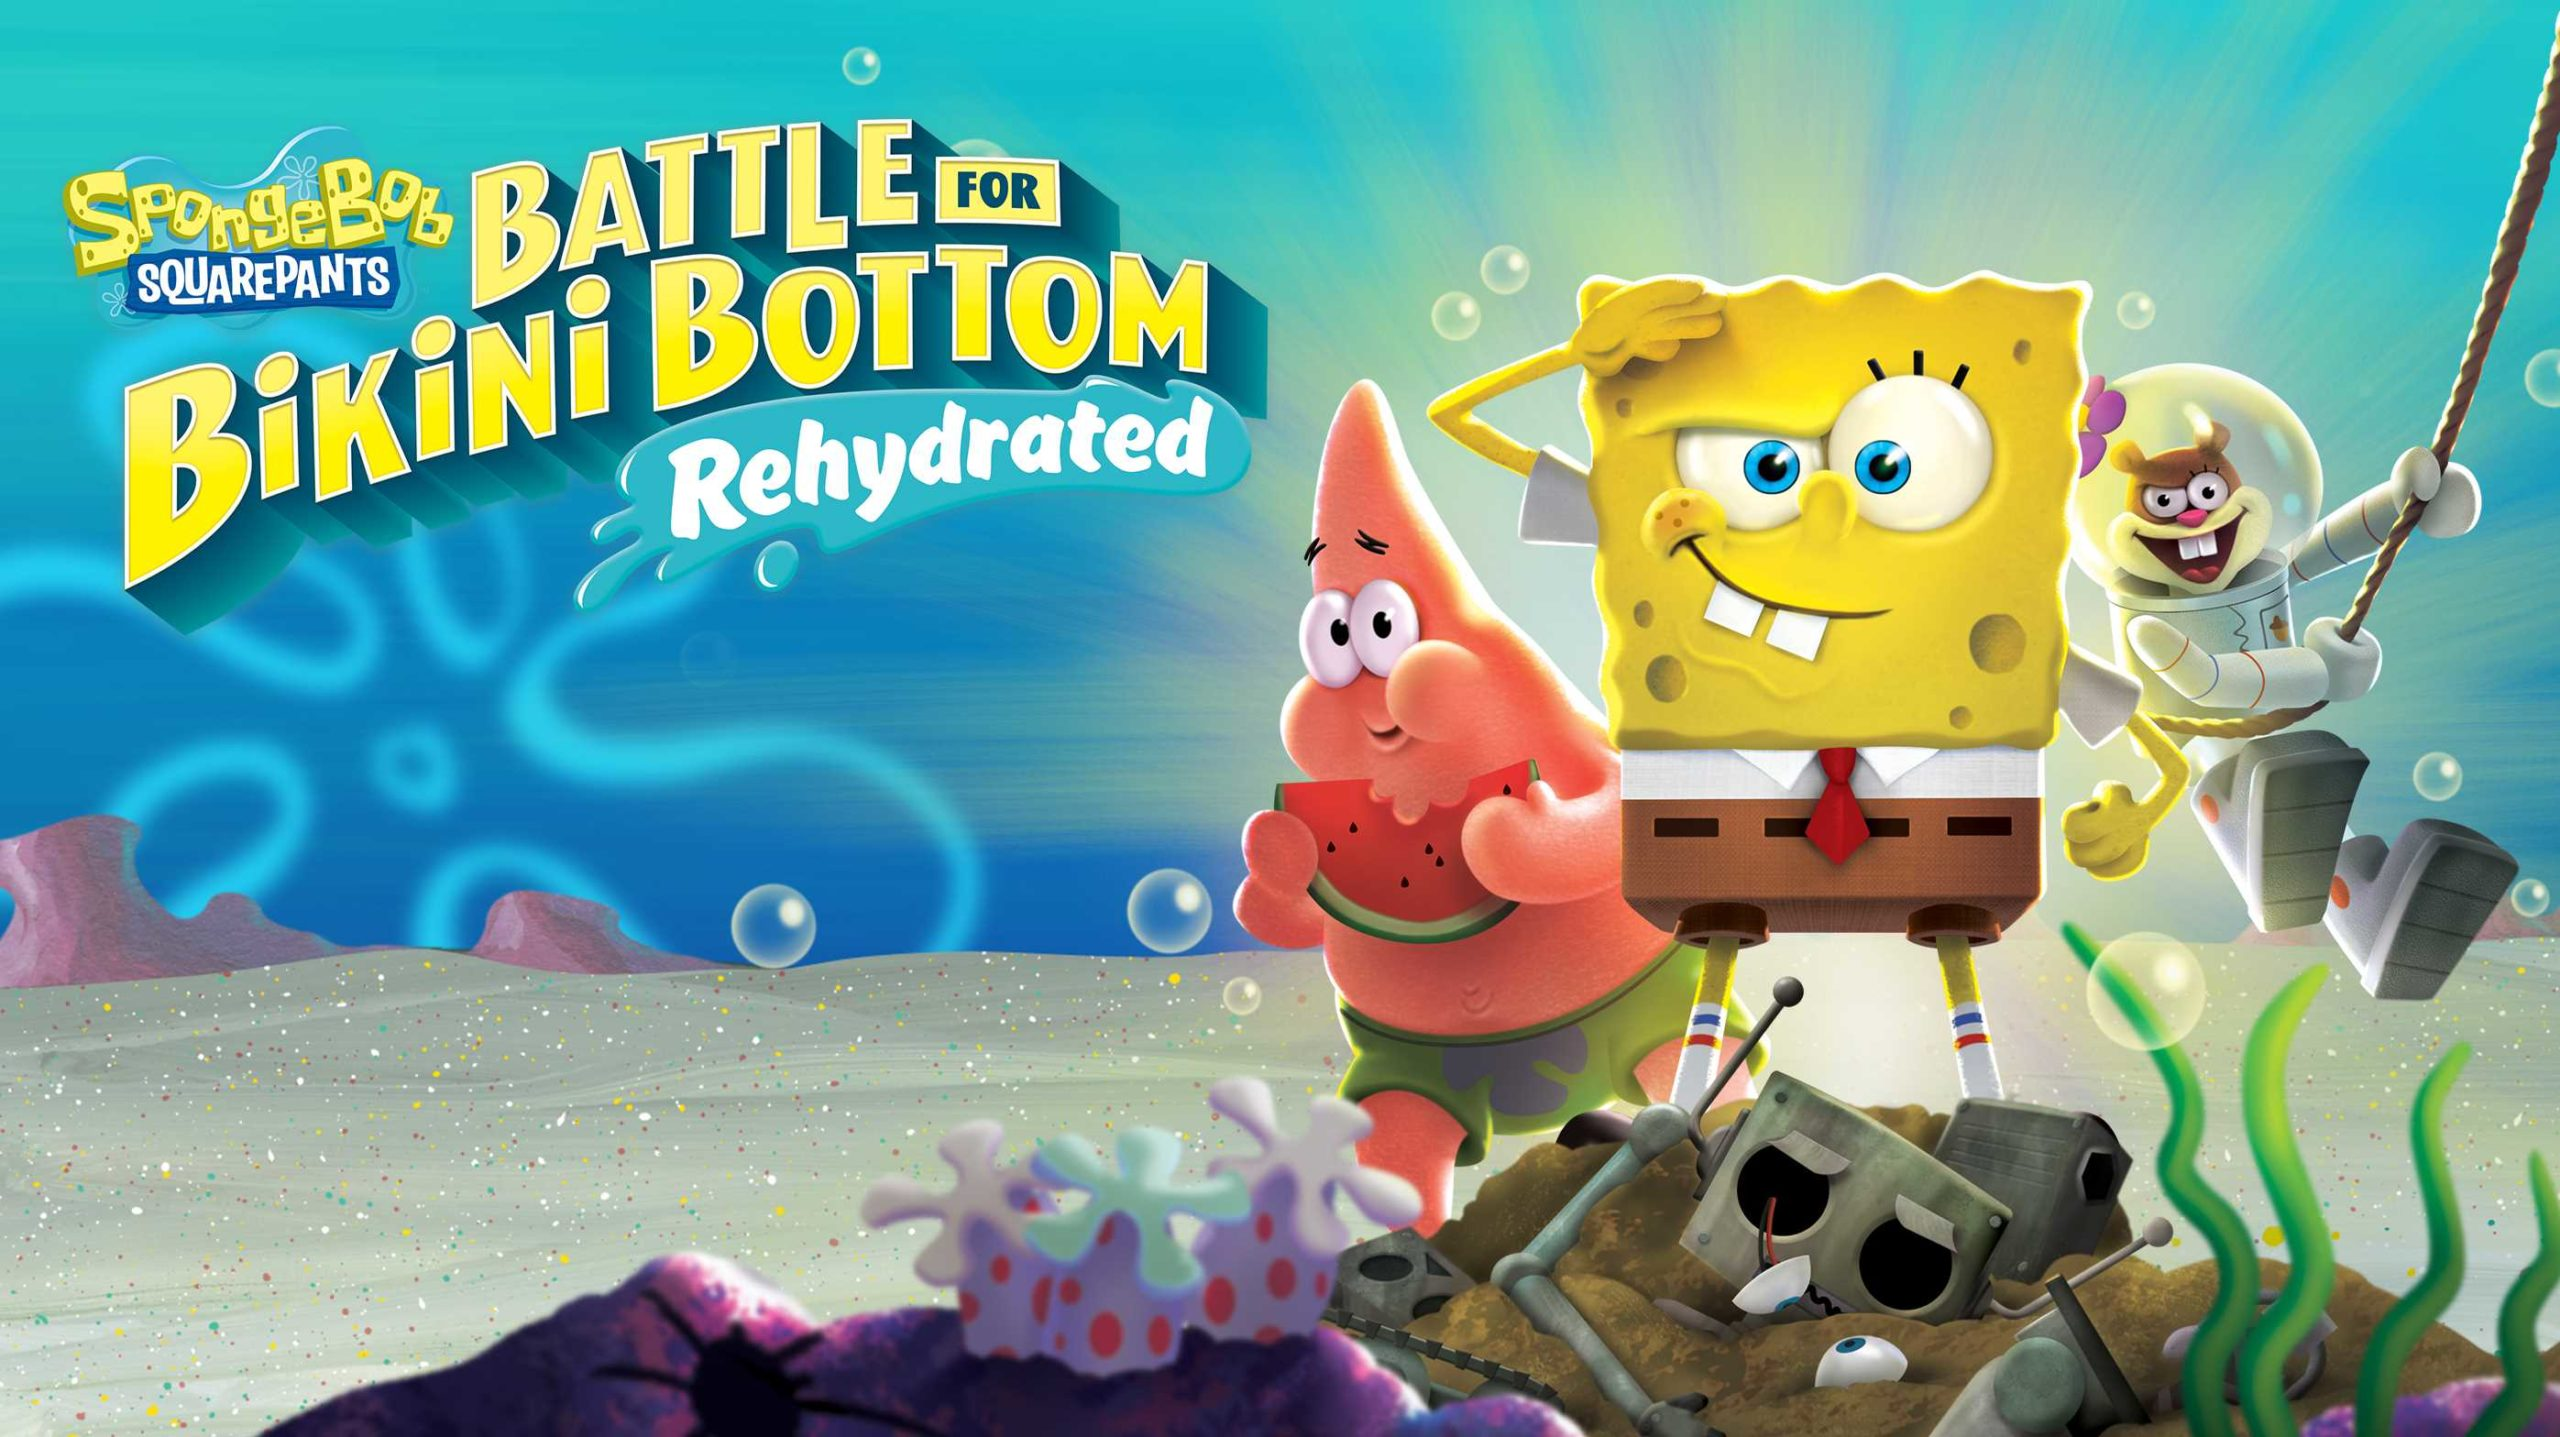 SpongeBob SquarePants Battle for Bikini Bottom Rehydrated